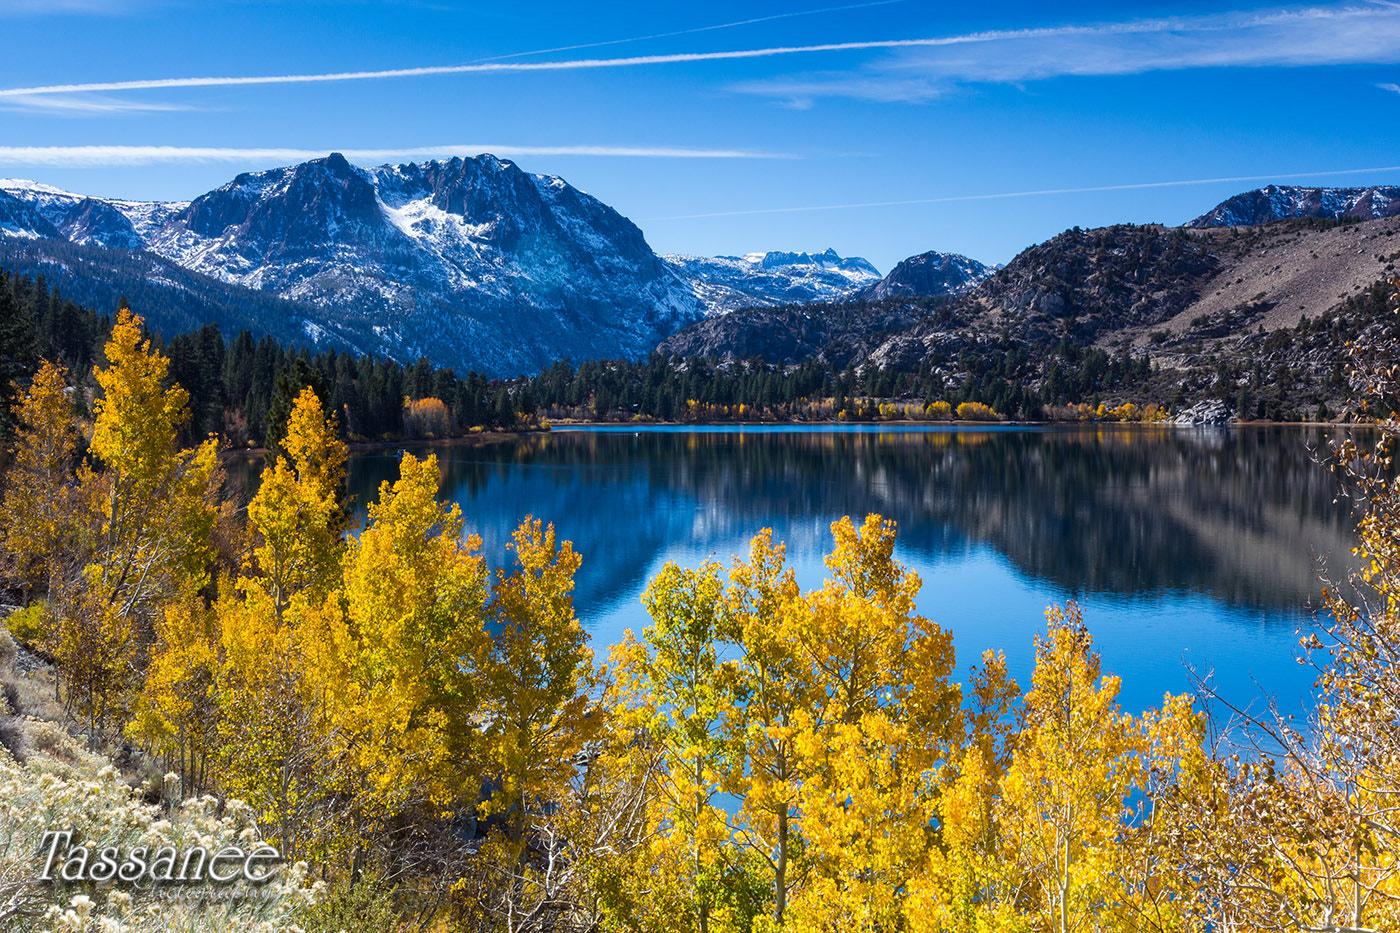 Photograph June Lake by Tassanee Angiolillo on 500px